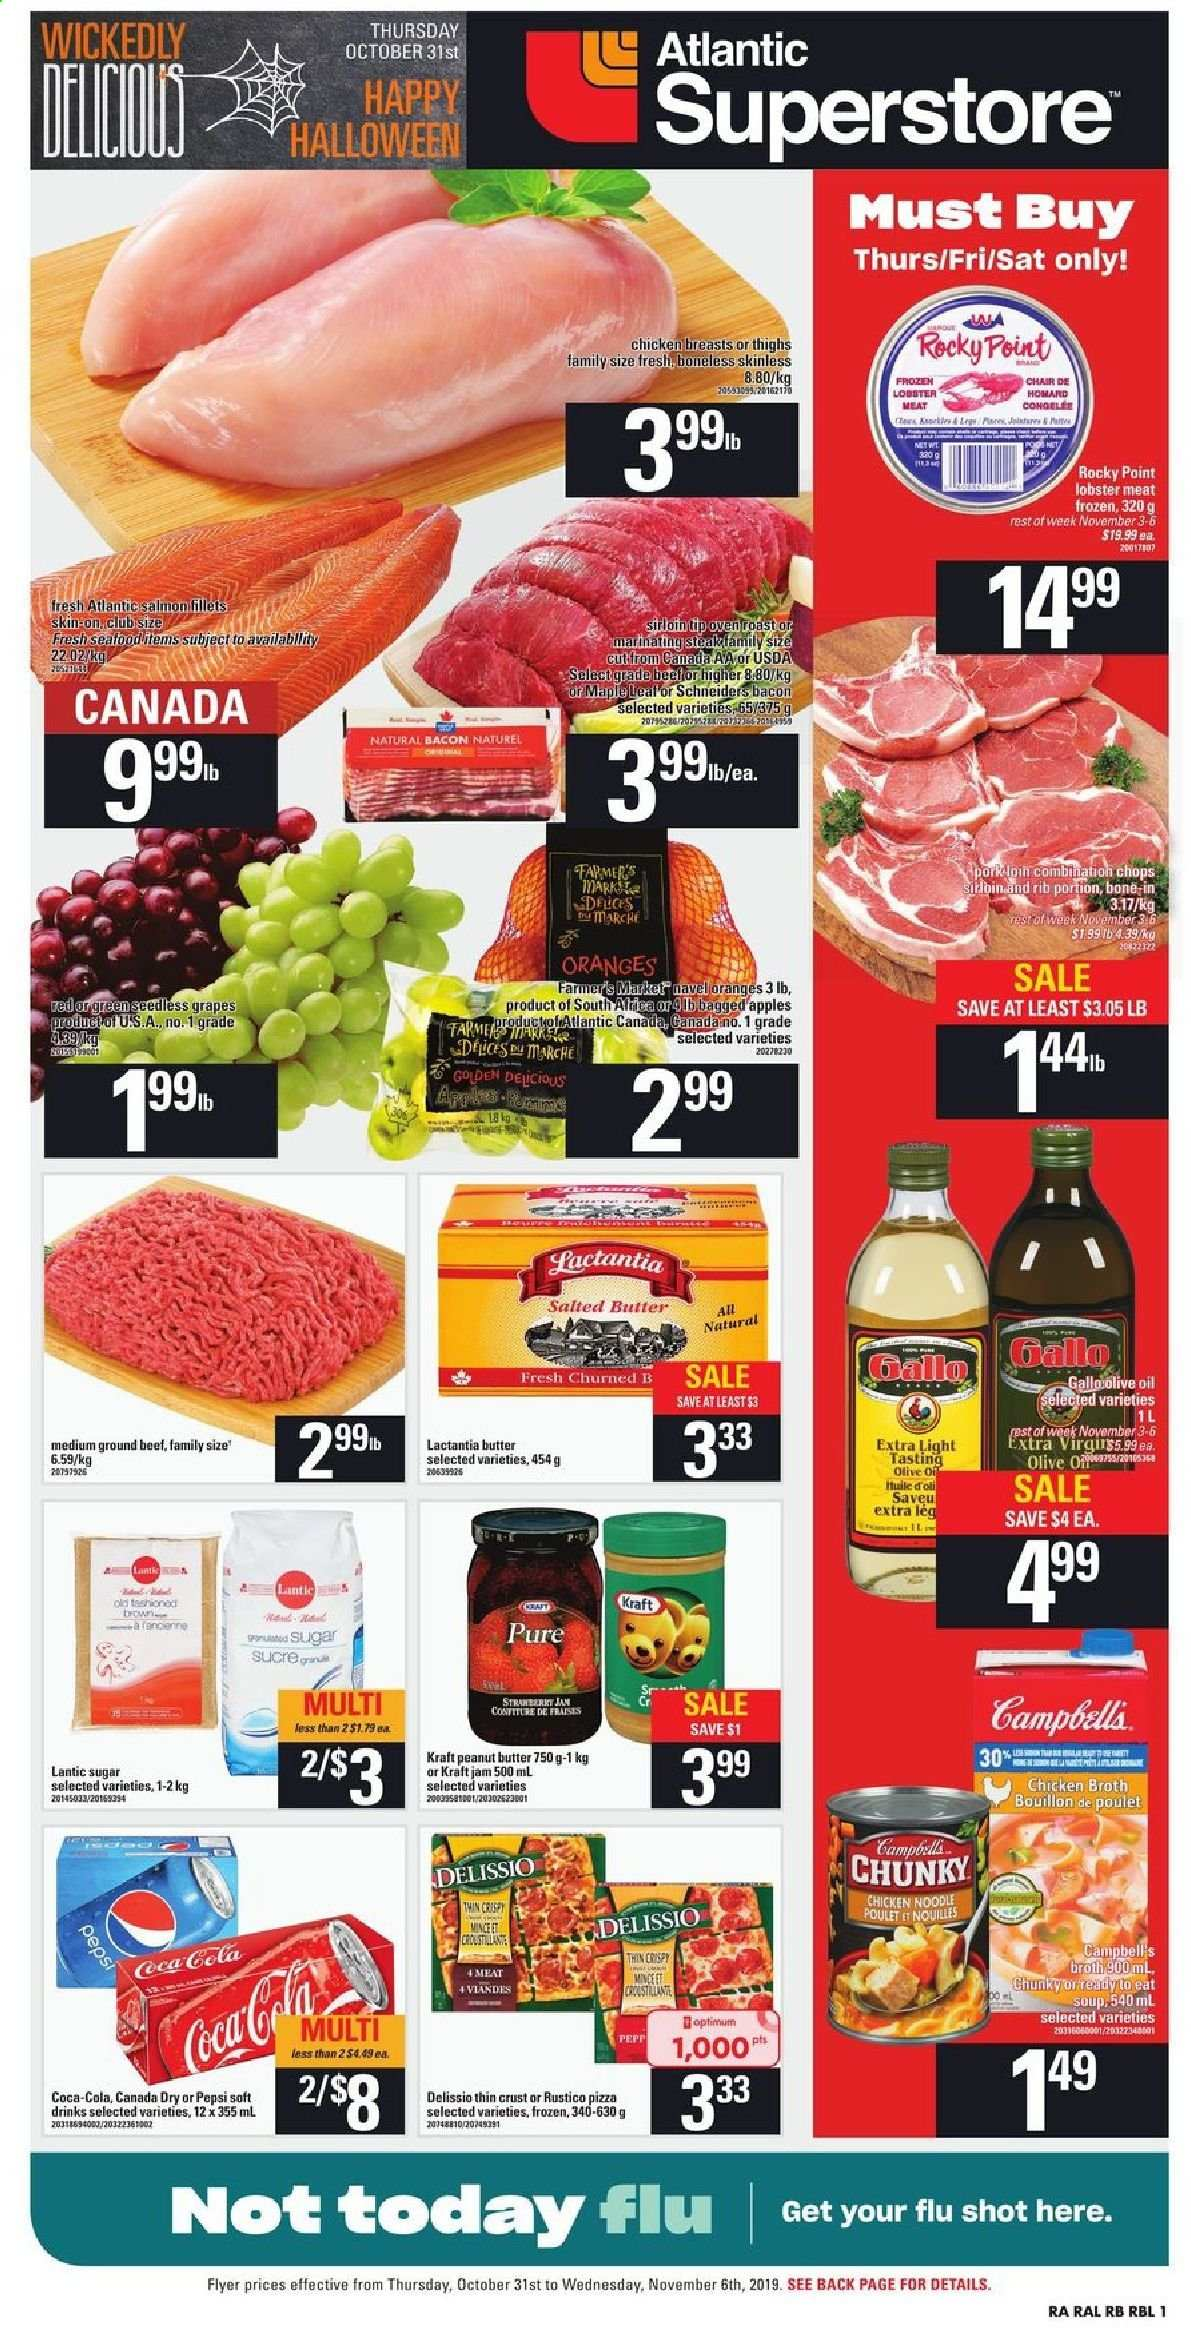 Atlantic Superstore Flyer  - October 31, 2019 - November 06, 2019. Page 1.